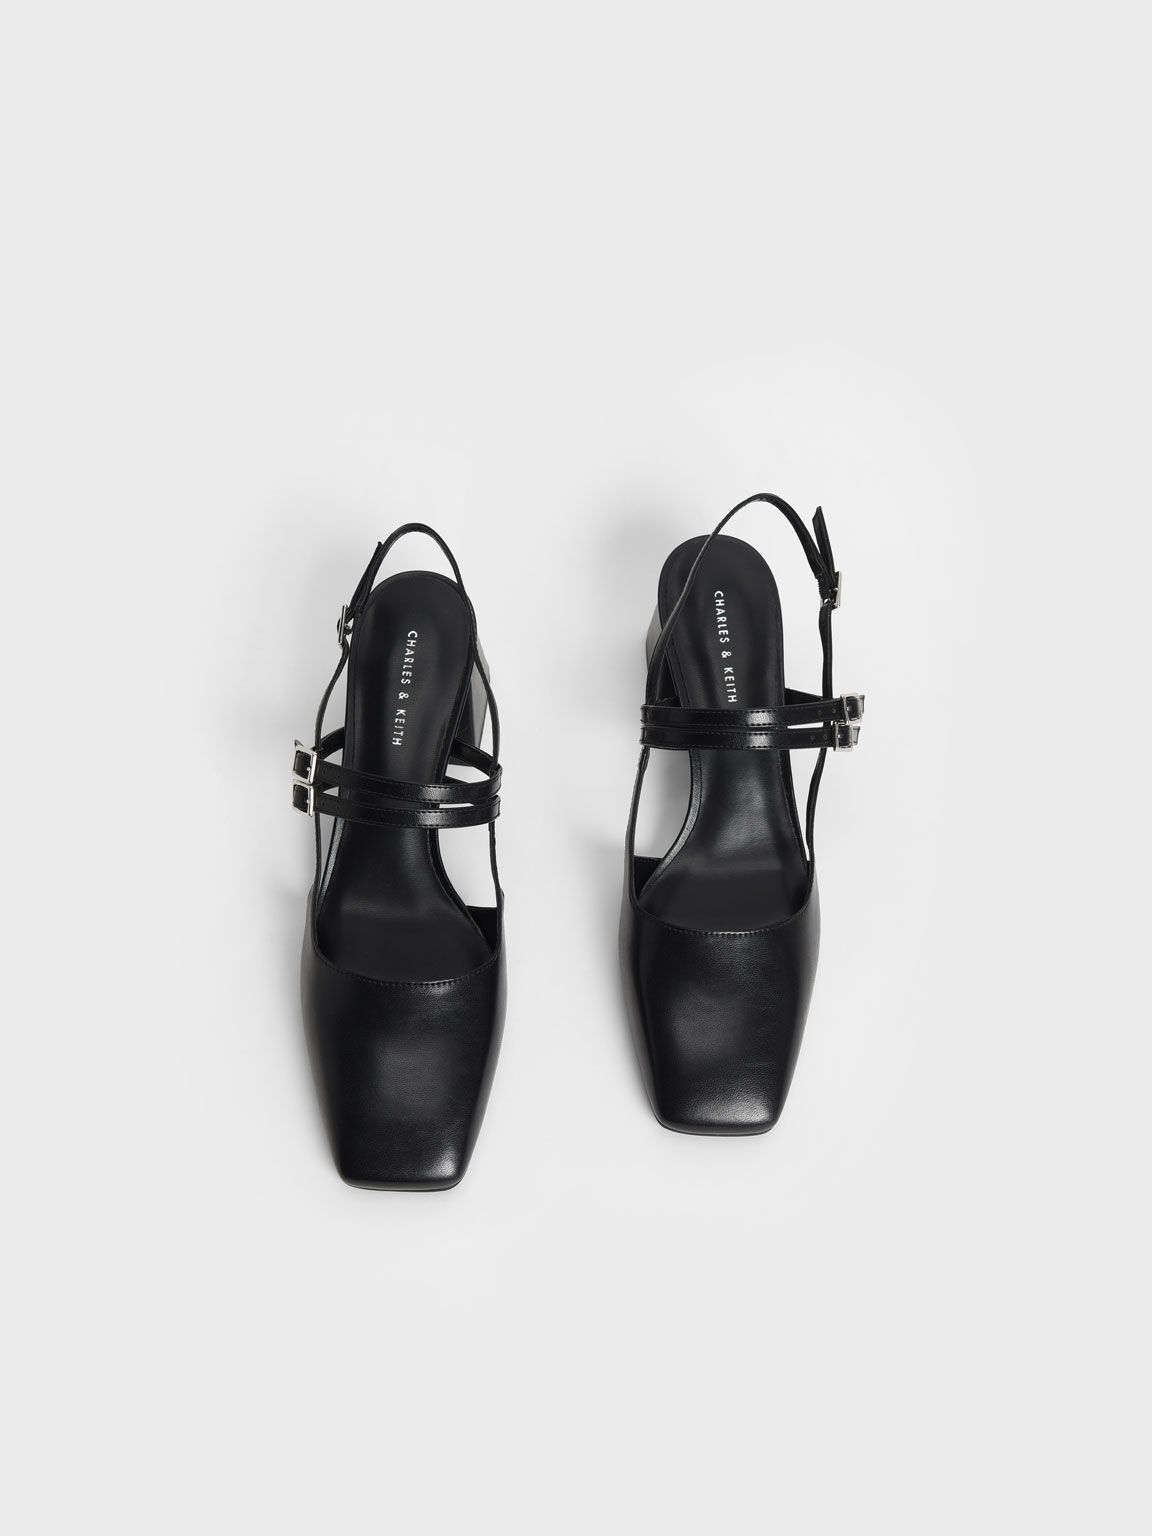 Double Strap Slingback Mary Janes, Black, hi-res